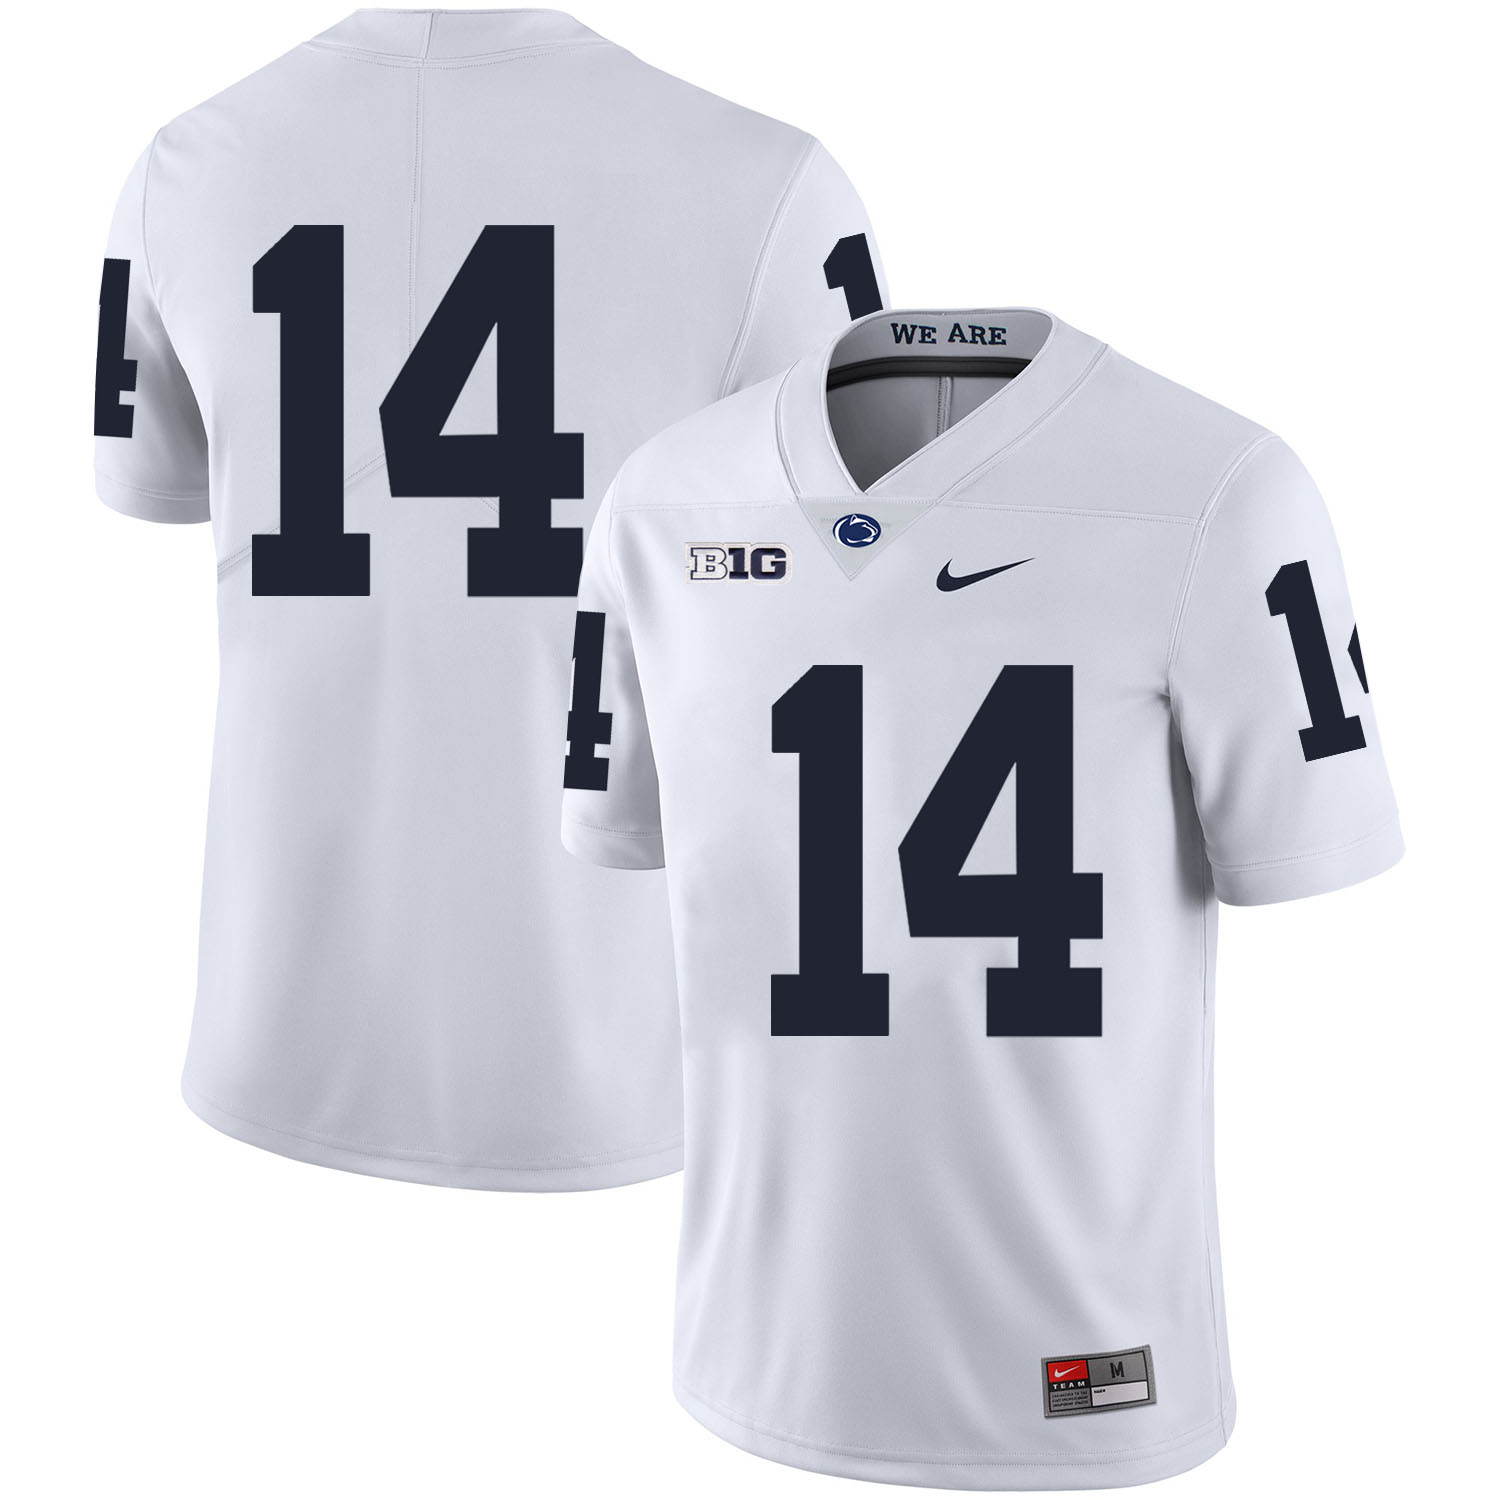 Penn State Nittany Lions 14 Christian Hackenberg White Nike College Football Jersey